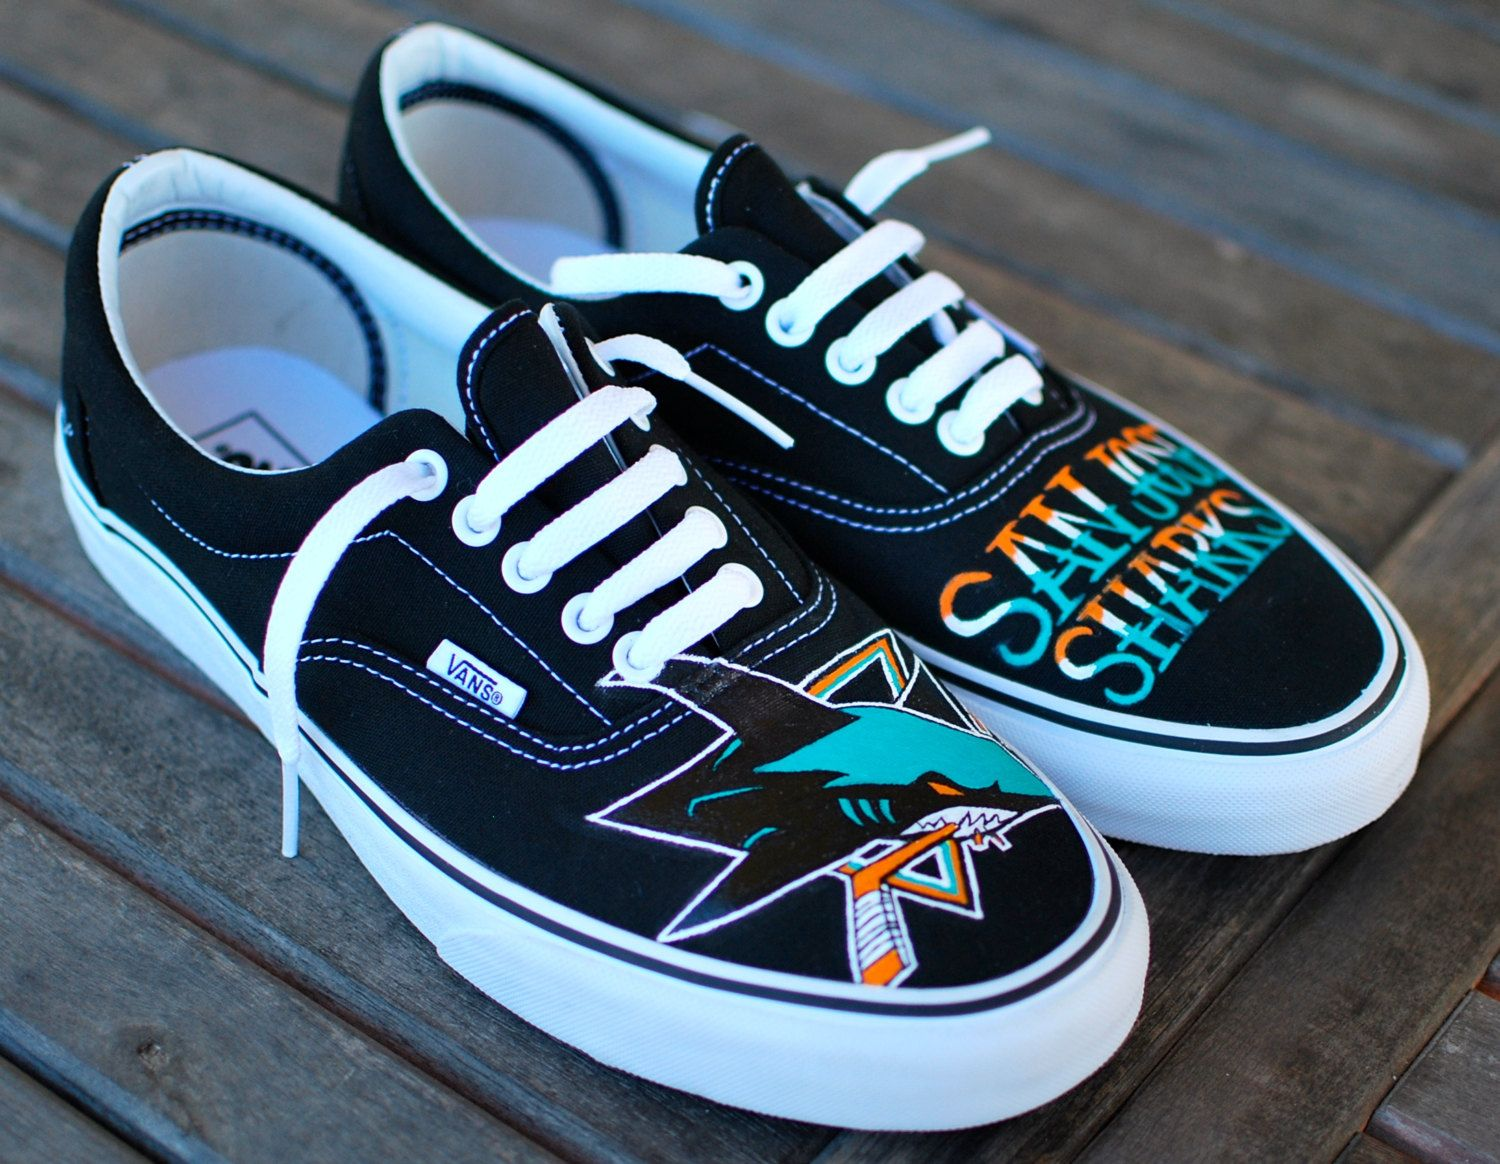 Pin By Gina On My Style Shark Shoes Vans Skate Shoes San Jose Sharks